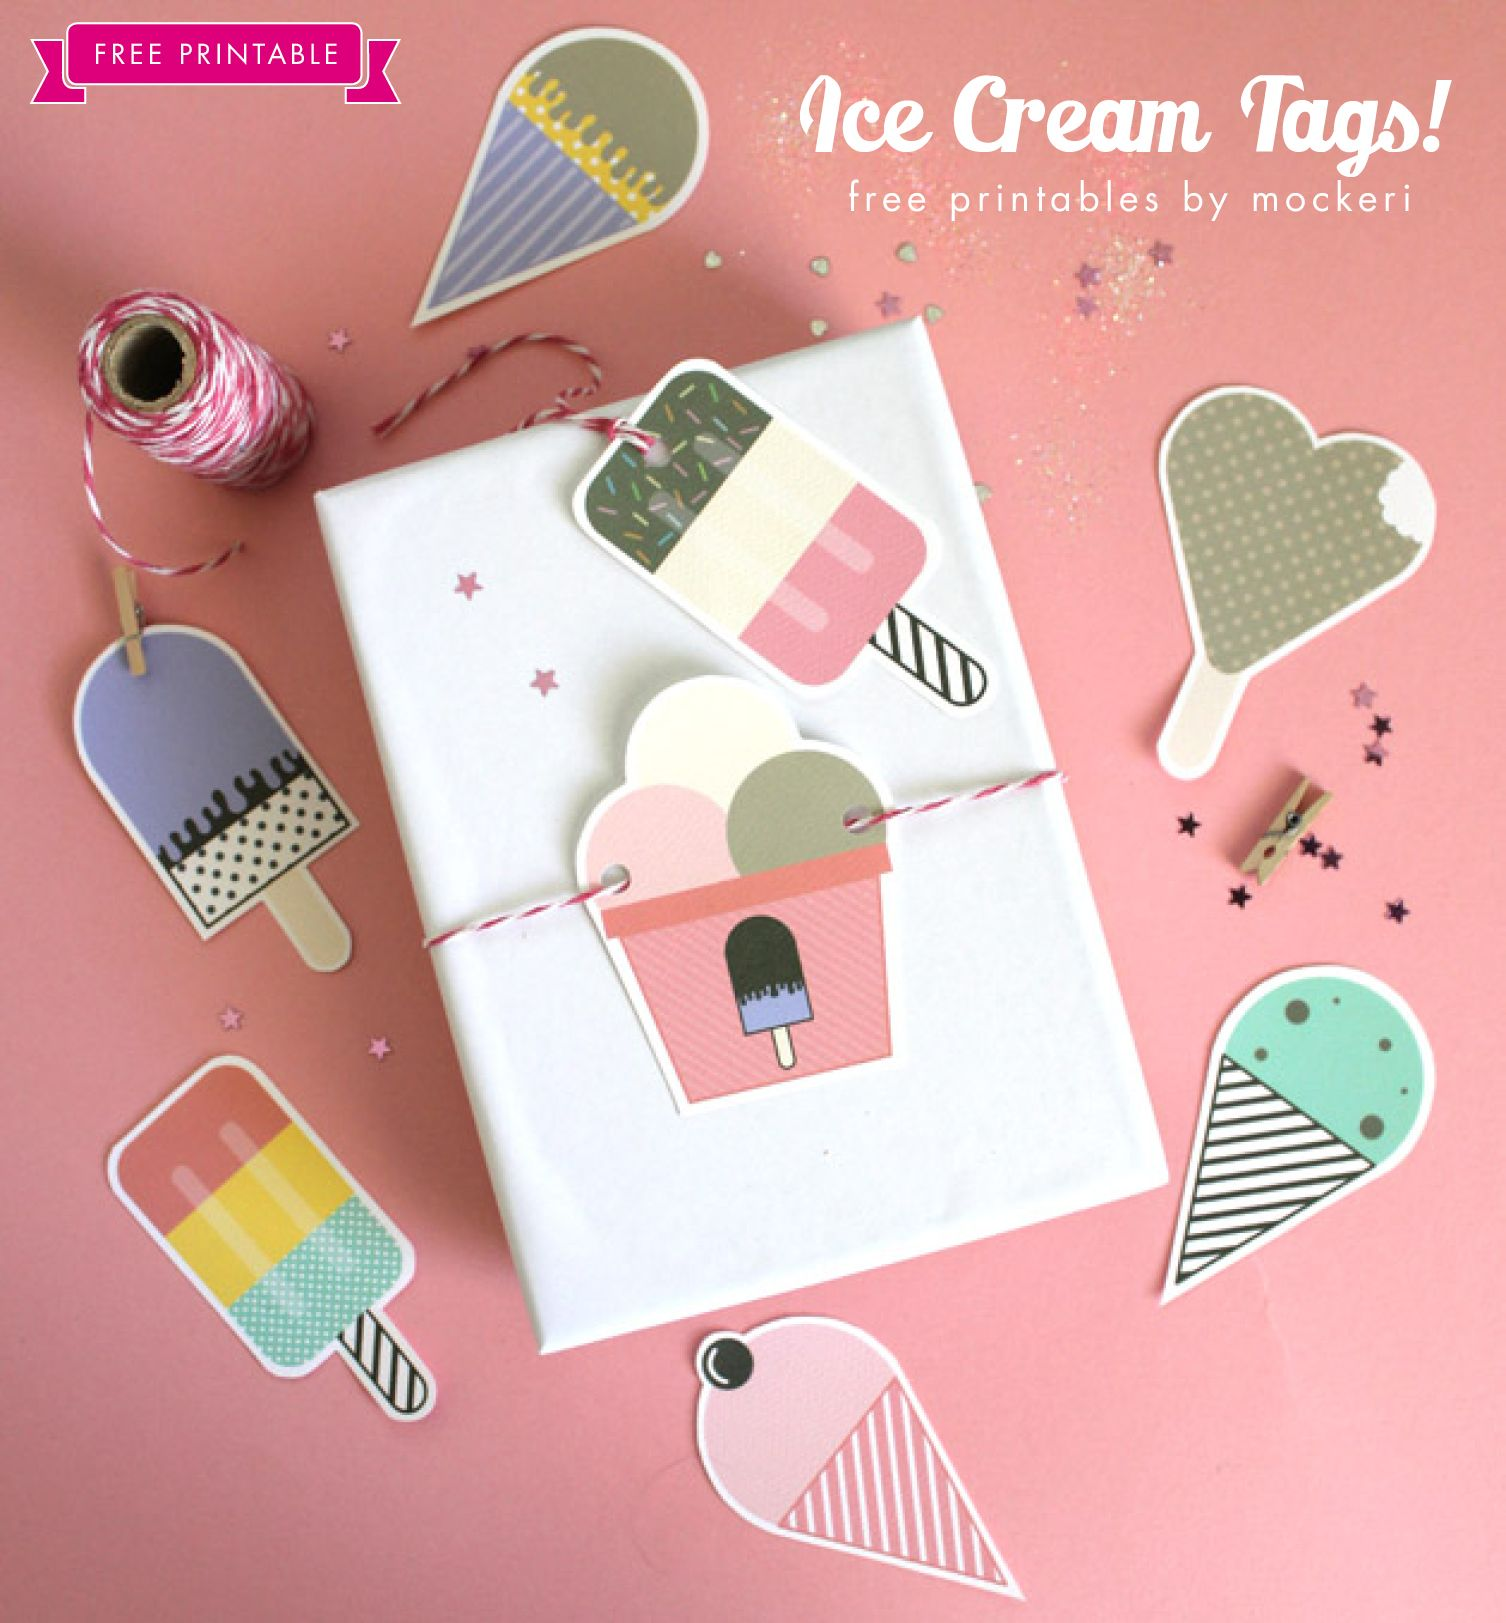 Perfect for summer free printable ice cream tags find more free free printable ice cream gift tags for summer gifts negle Gallery